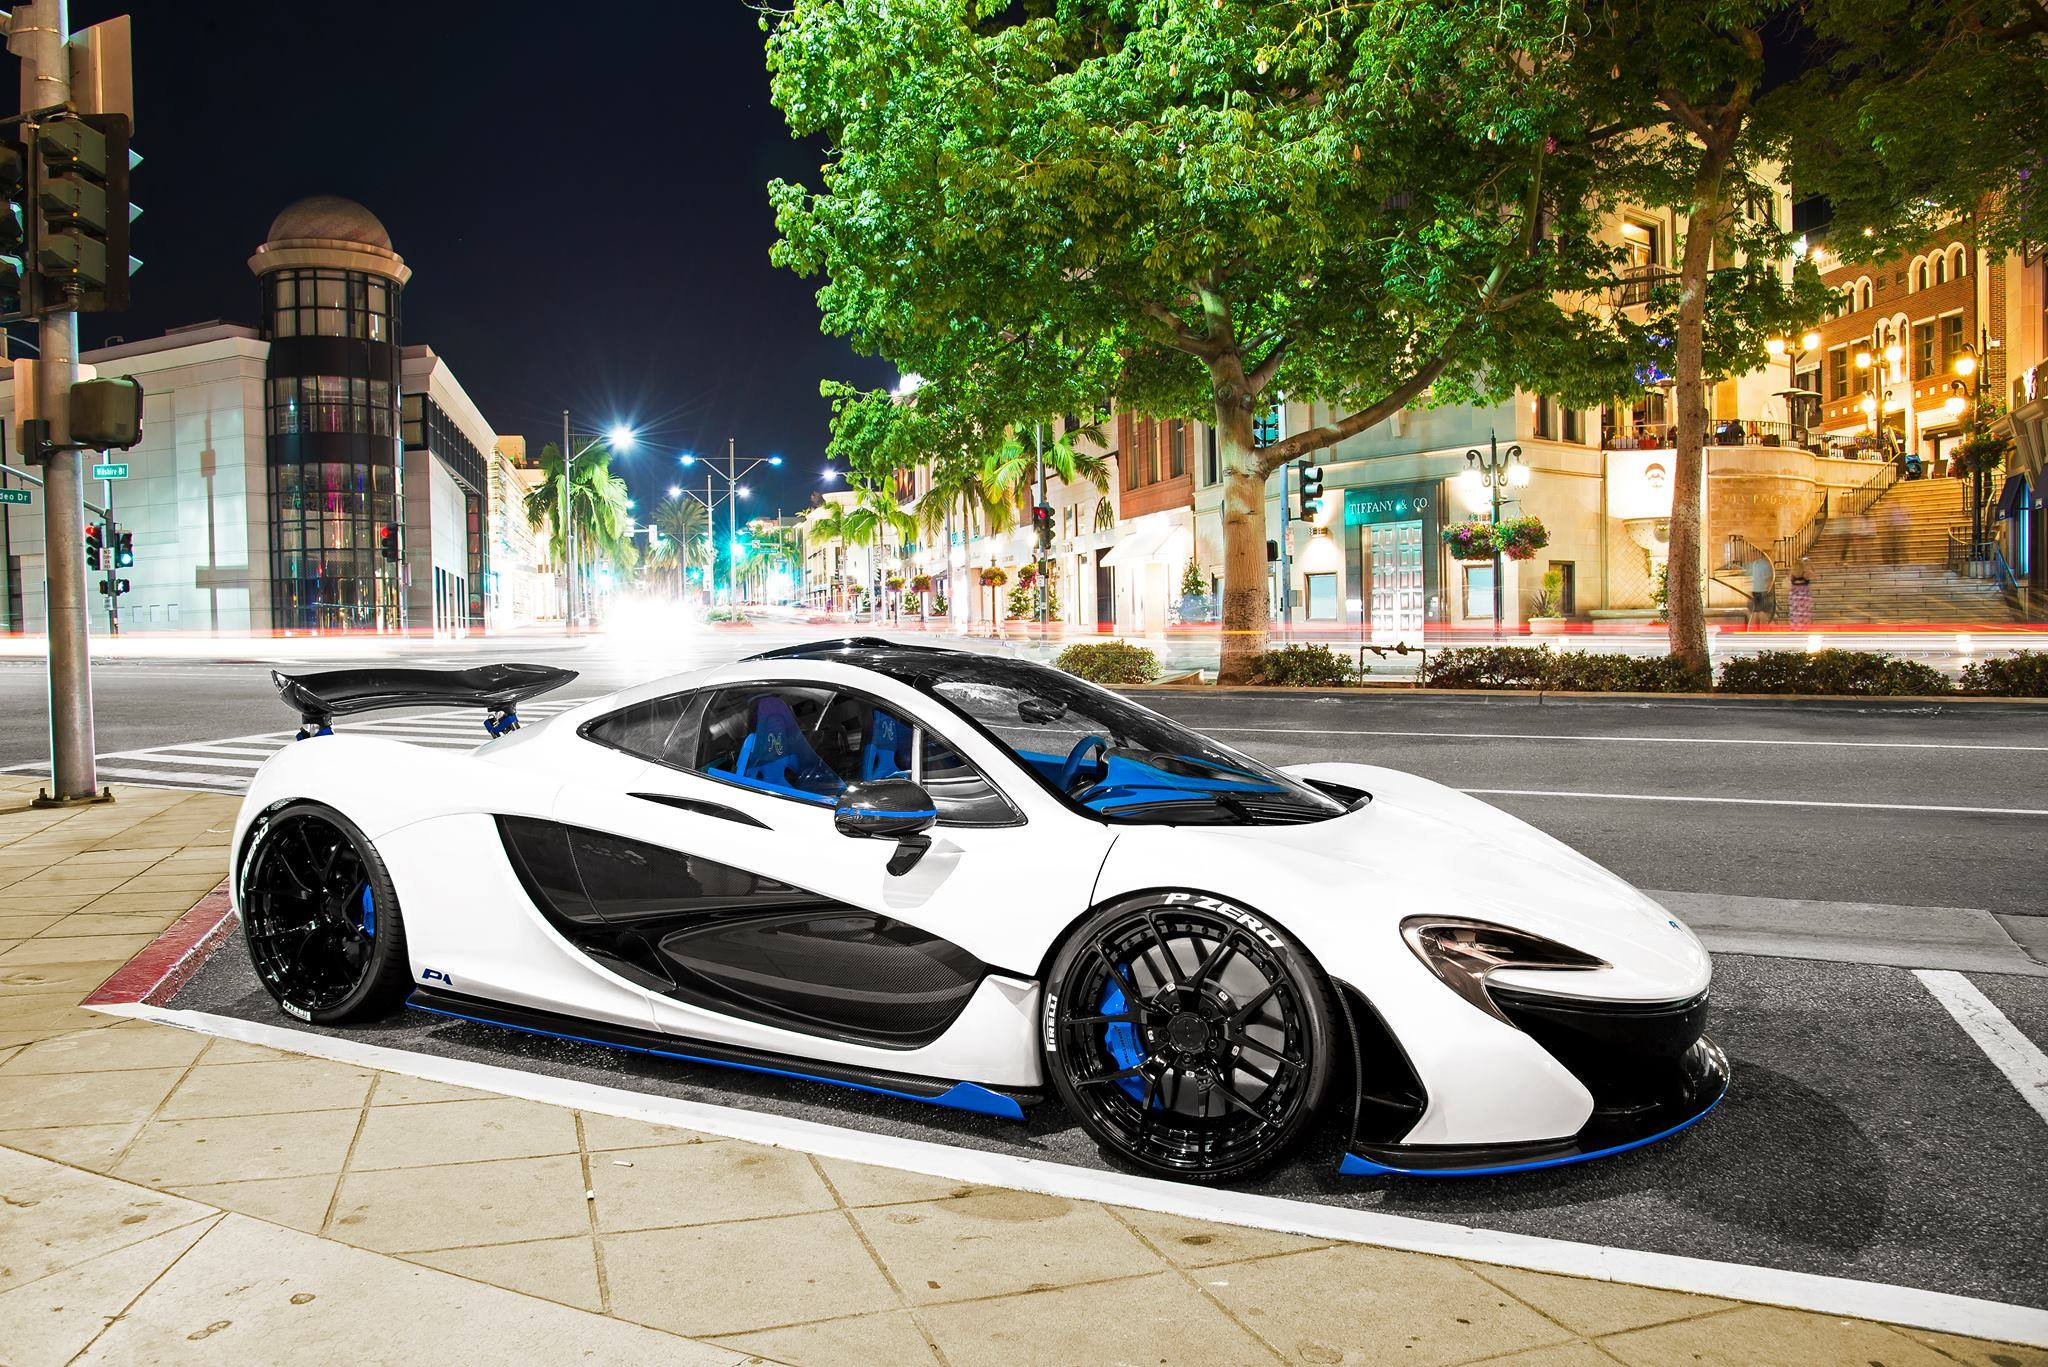 4k Wallpapers Exotic Super Sports Cars One Of The Best Looking Mclaren P1 I Ve Seen So Far